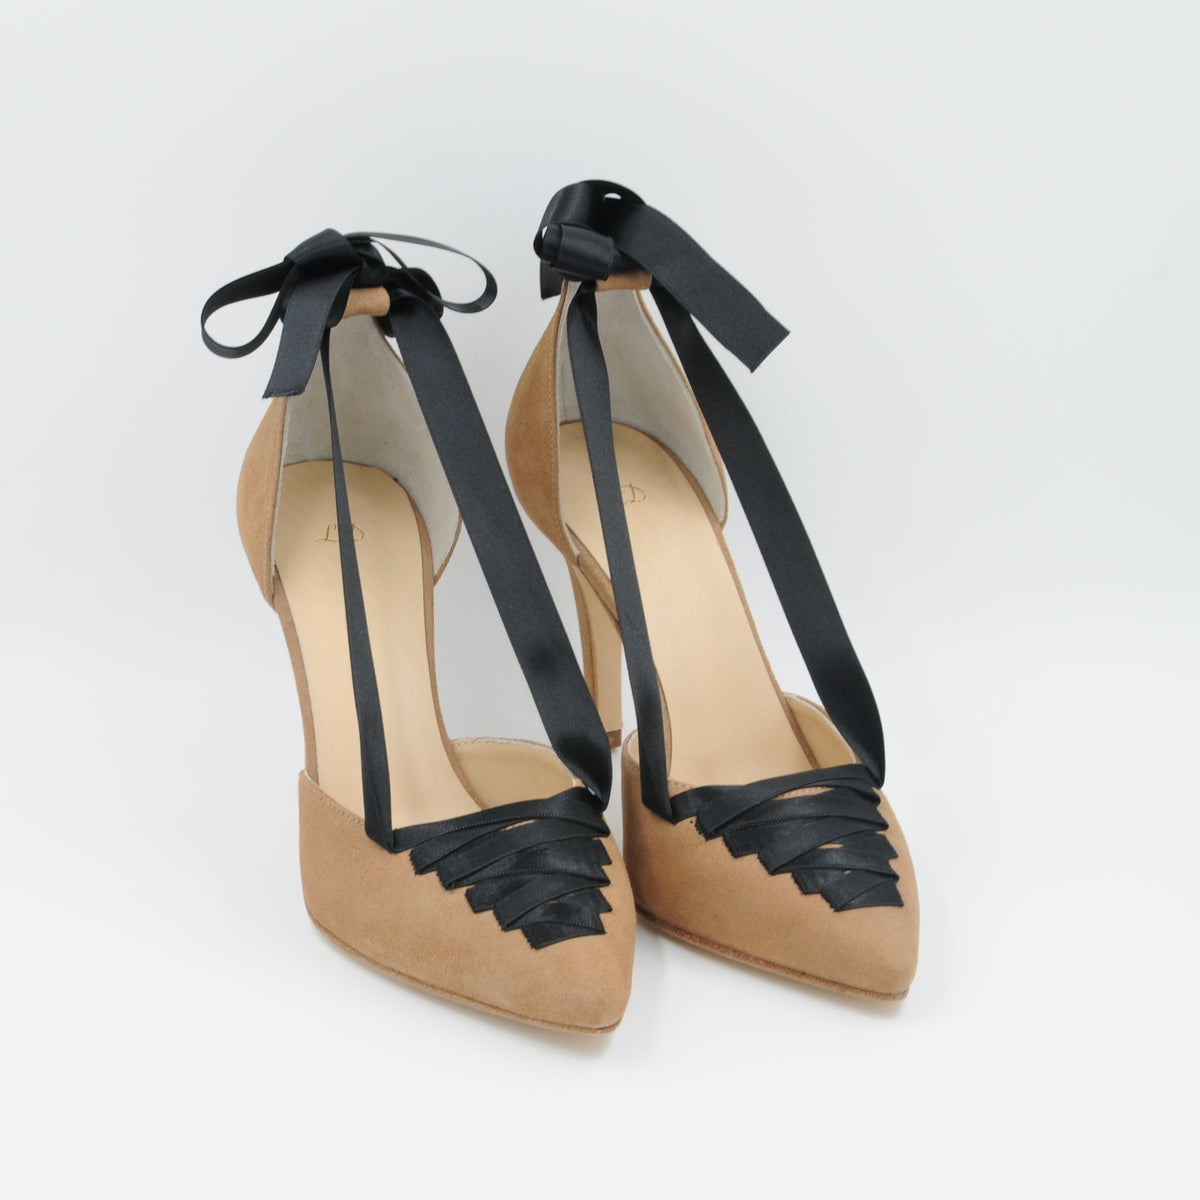 Lola Domecq Sophie In Beige Handmade suede lace up heels